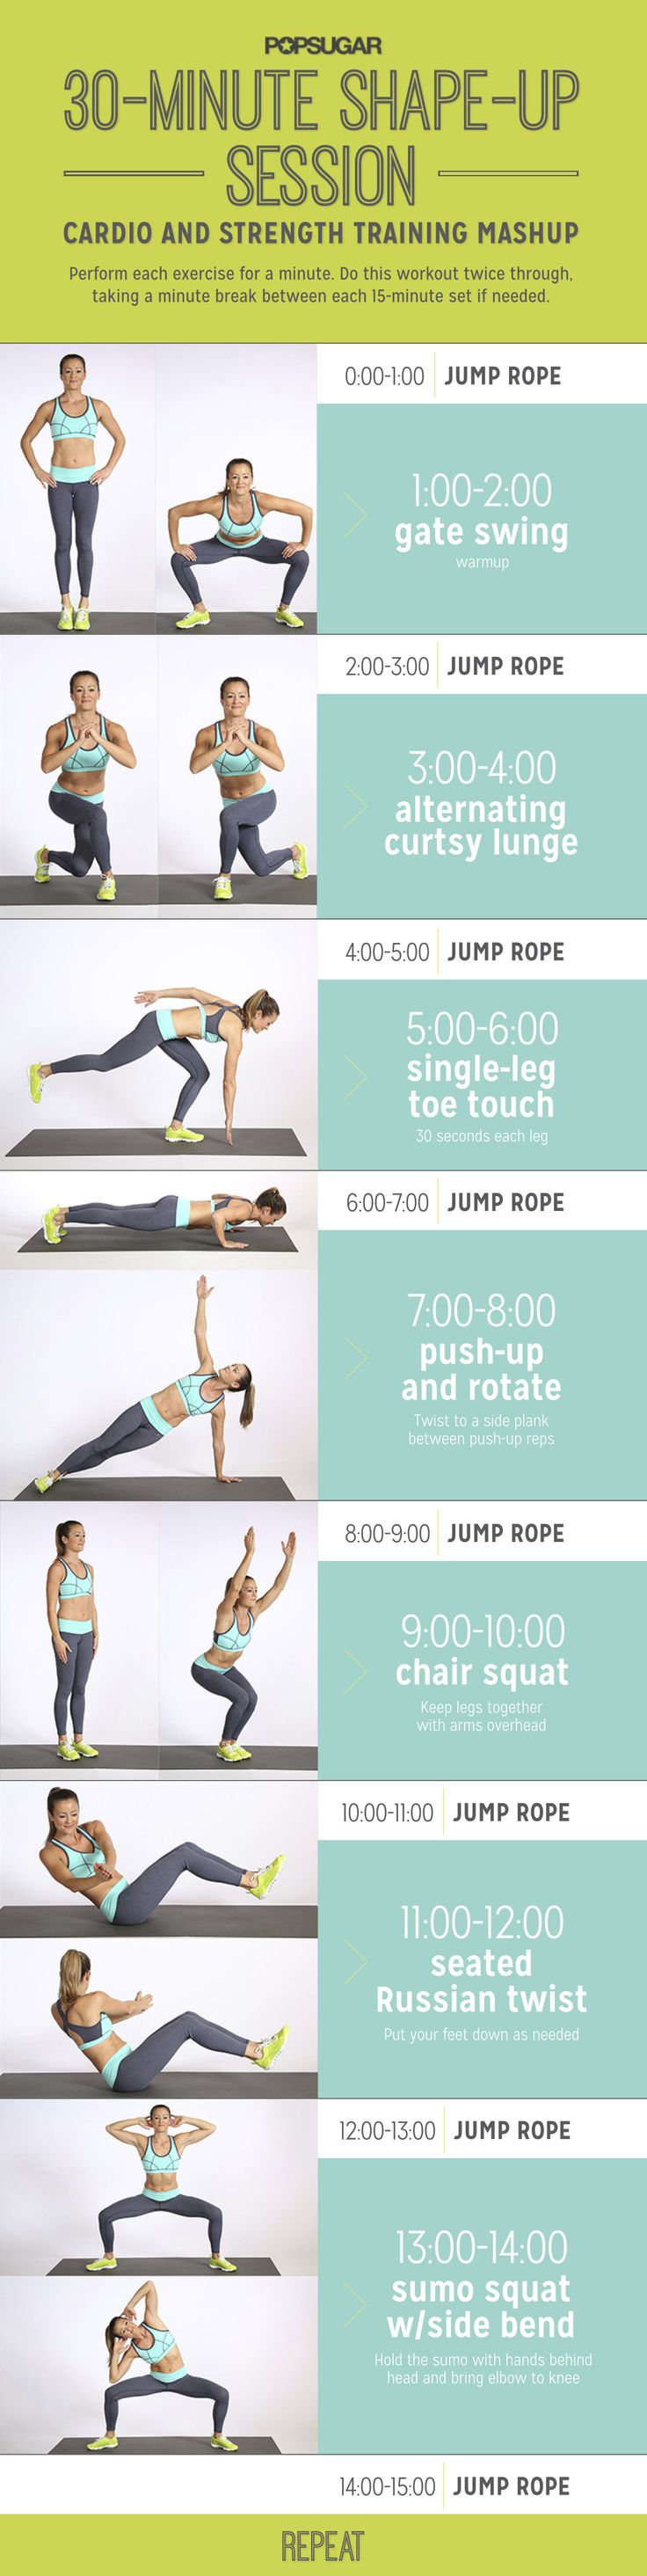 Jump rope strength workout